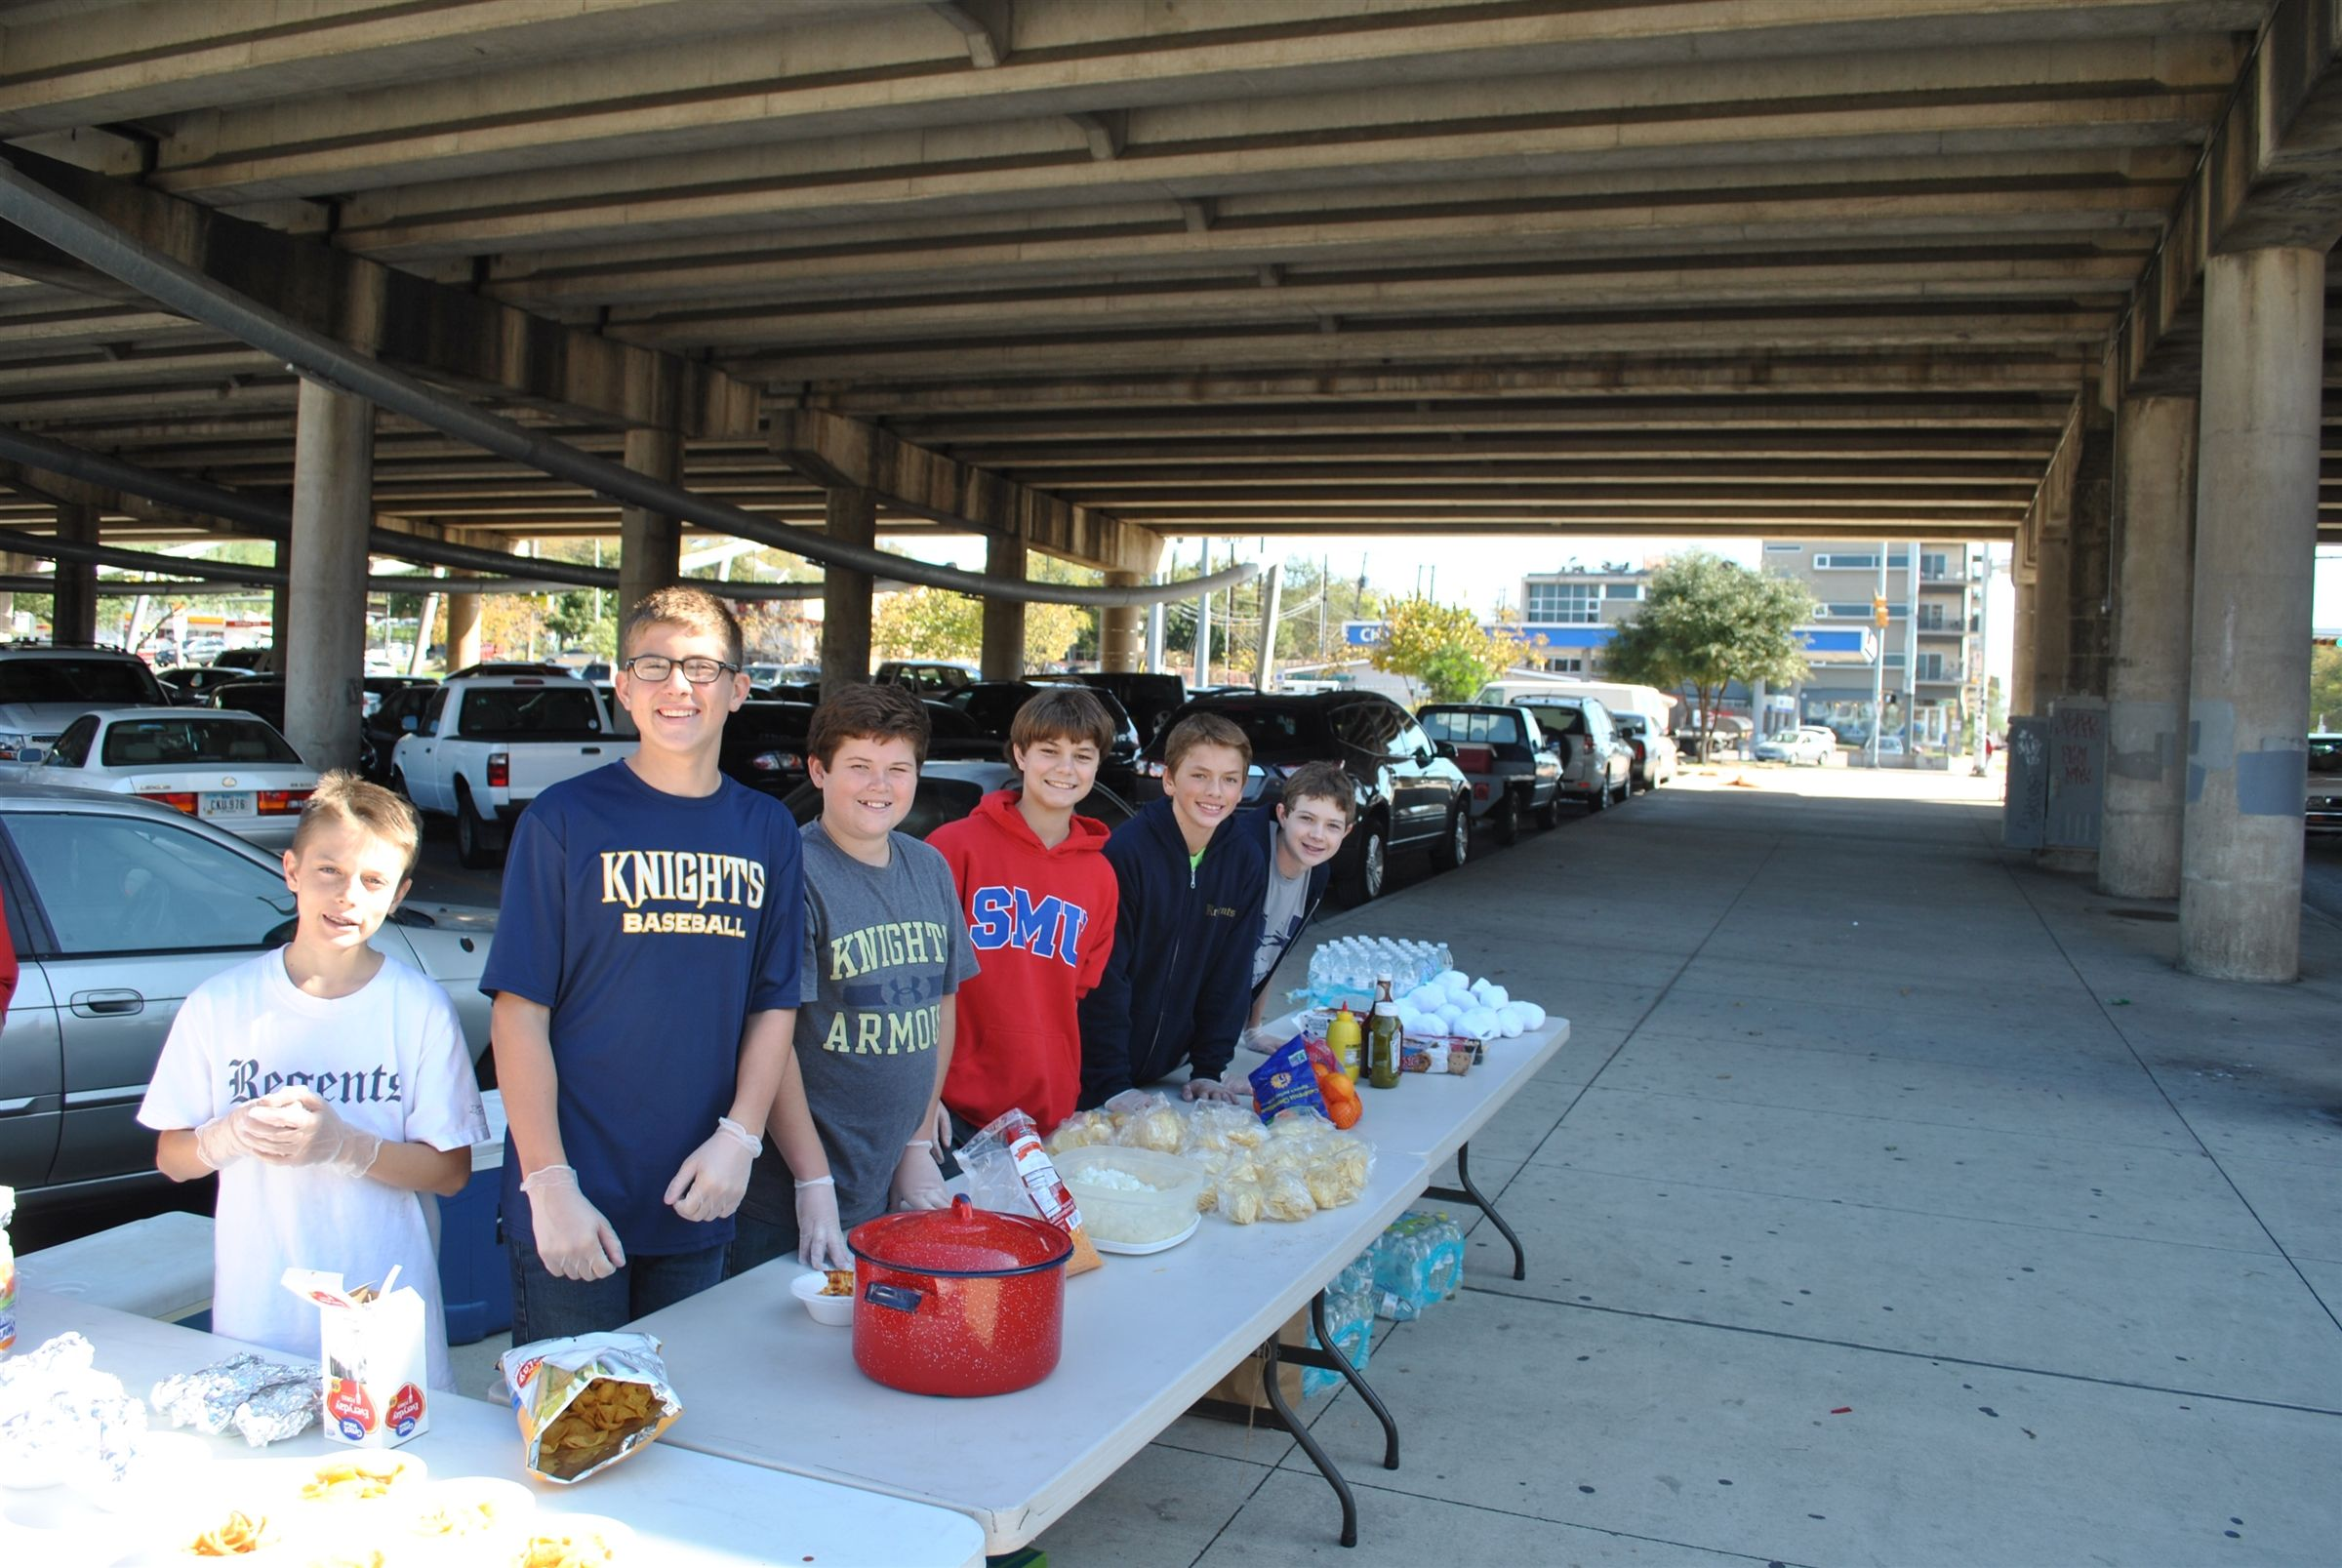 Logic students providing a meal for friends who are homeless.